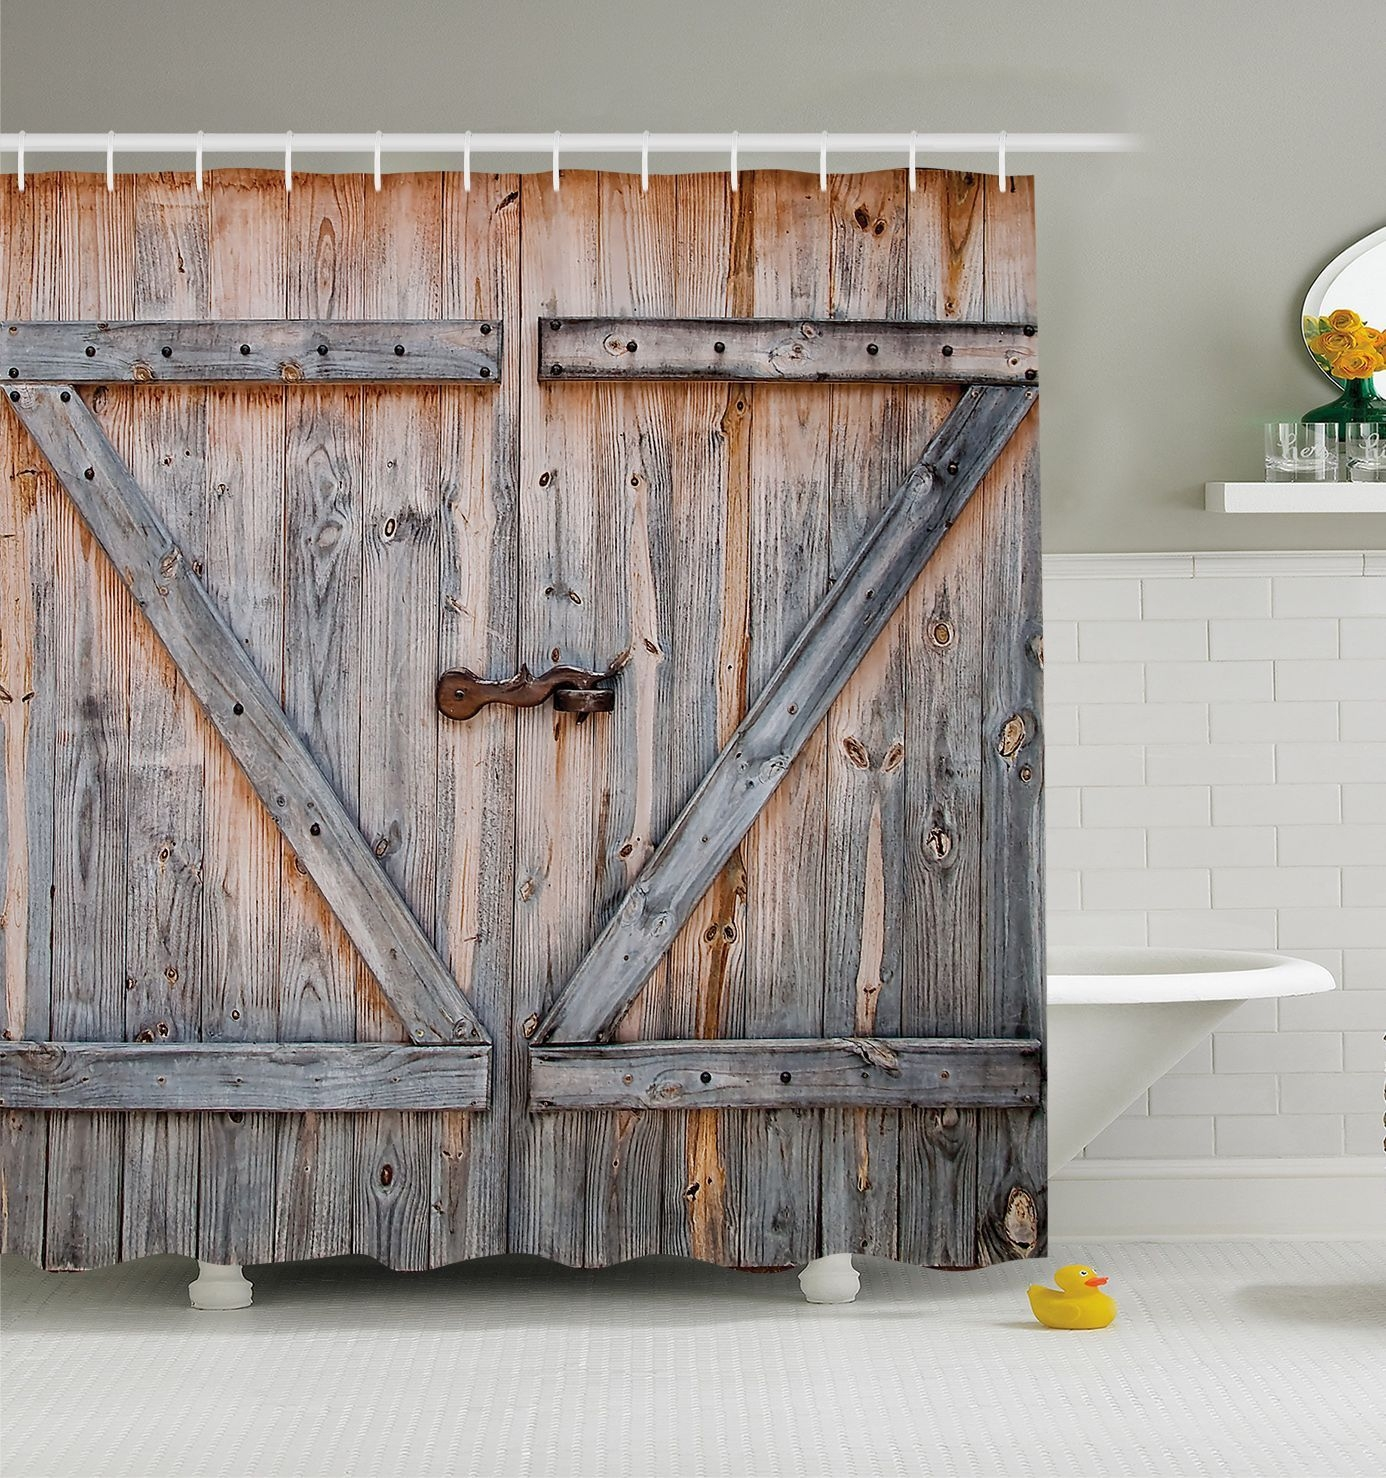 Barn Door Shower Curtainrustic barn door shower curtain wood plank farm vintage distressed